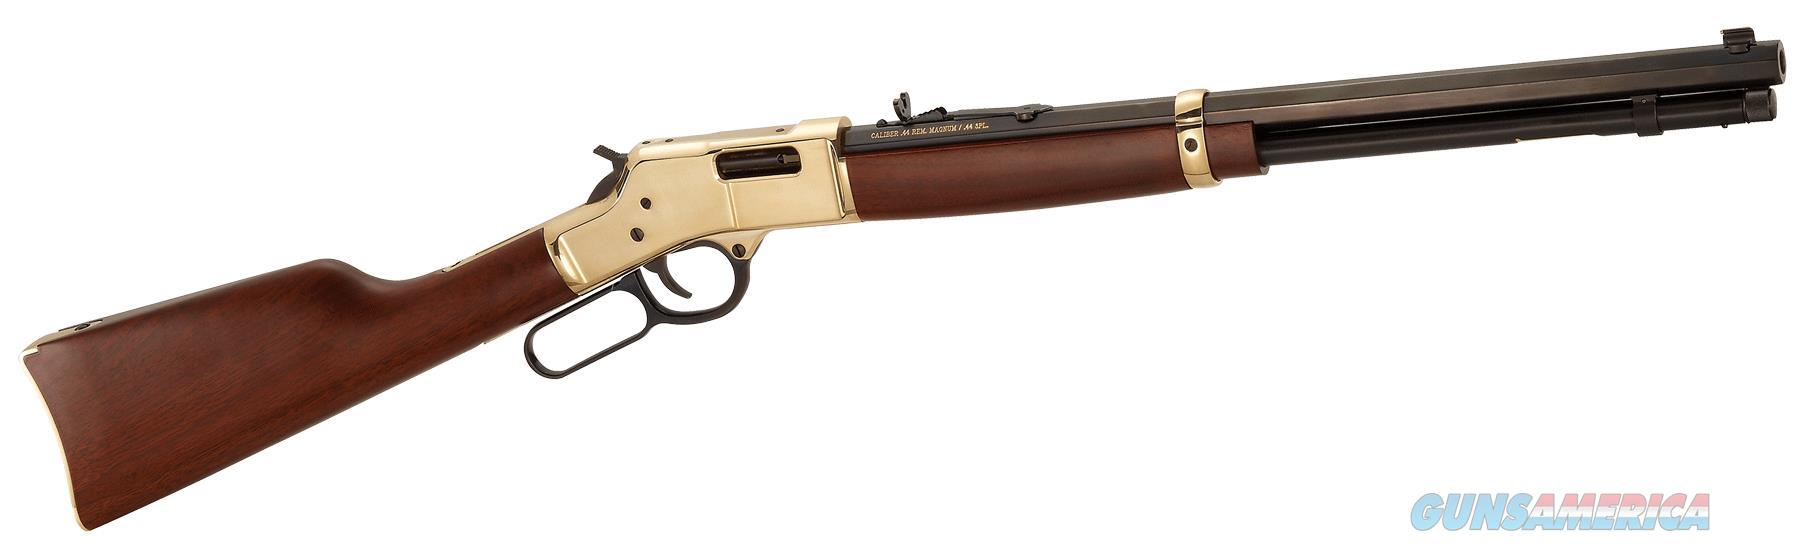 "Henry Big Boy Brass .41 Magnum 20"" Octagon 10 Rds H006M41   Guns > Rifles > Henry Rifle Company"